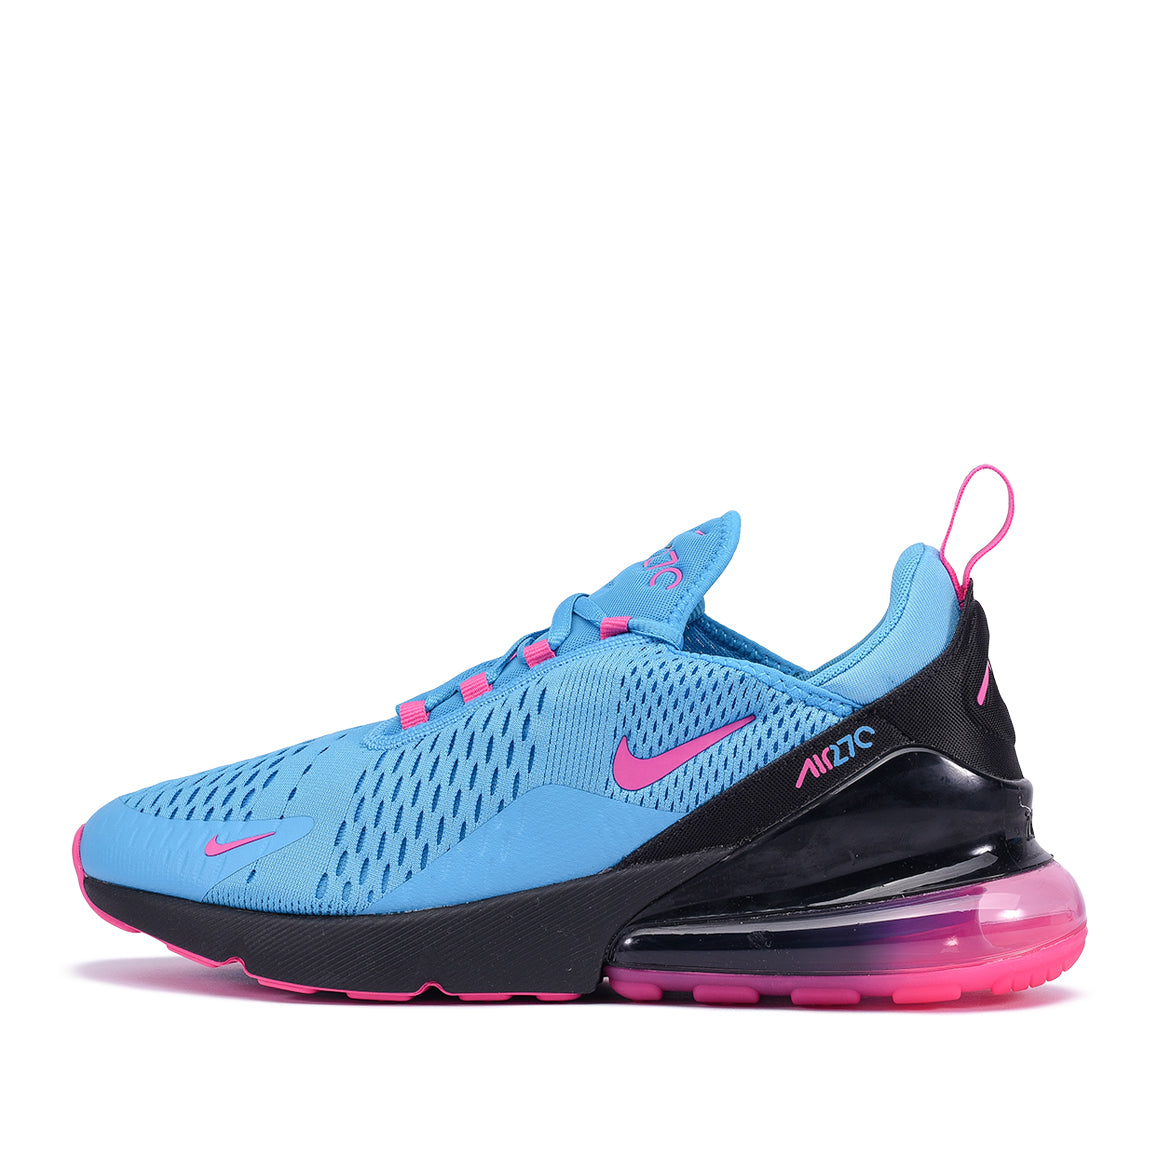 8d11e371d5 AIR MAX 270 - LIGHT BLUE FURY / LASER FUCHSIA | City Blue